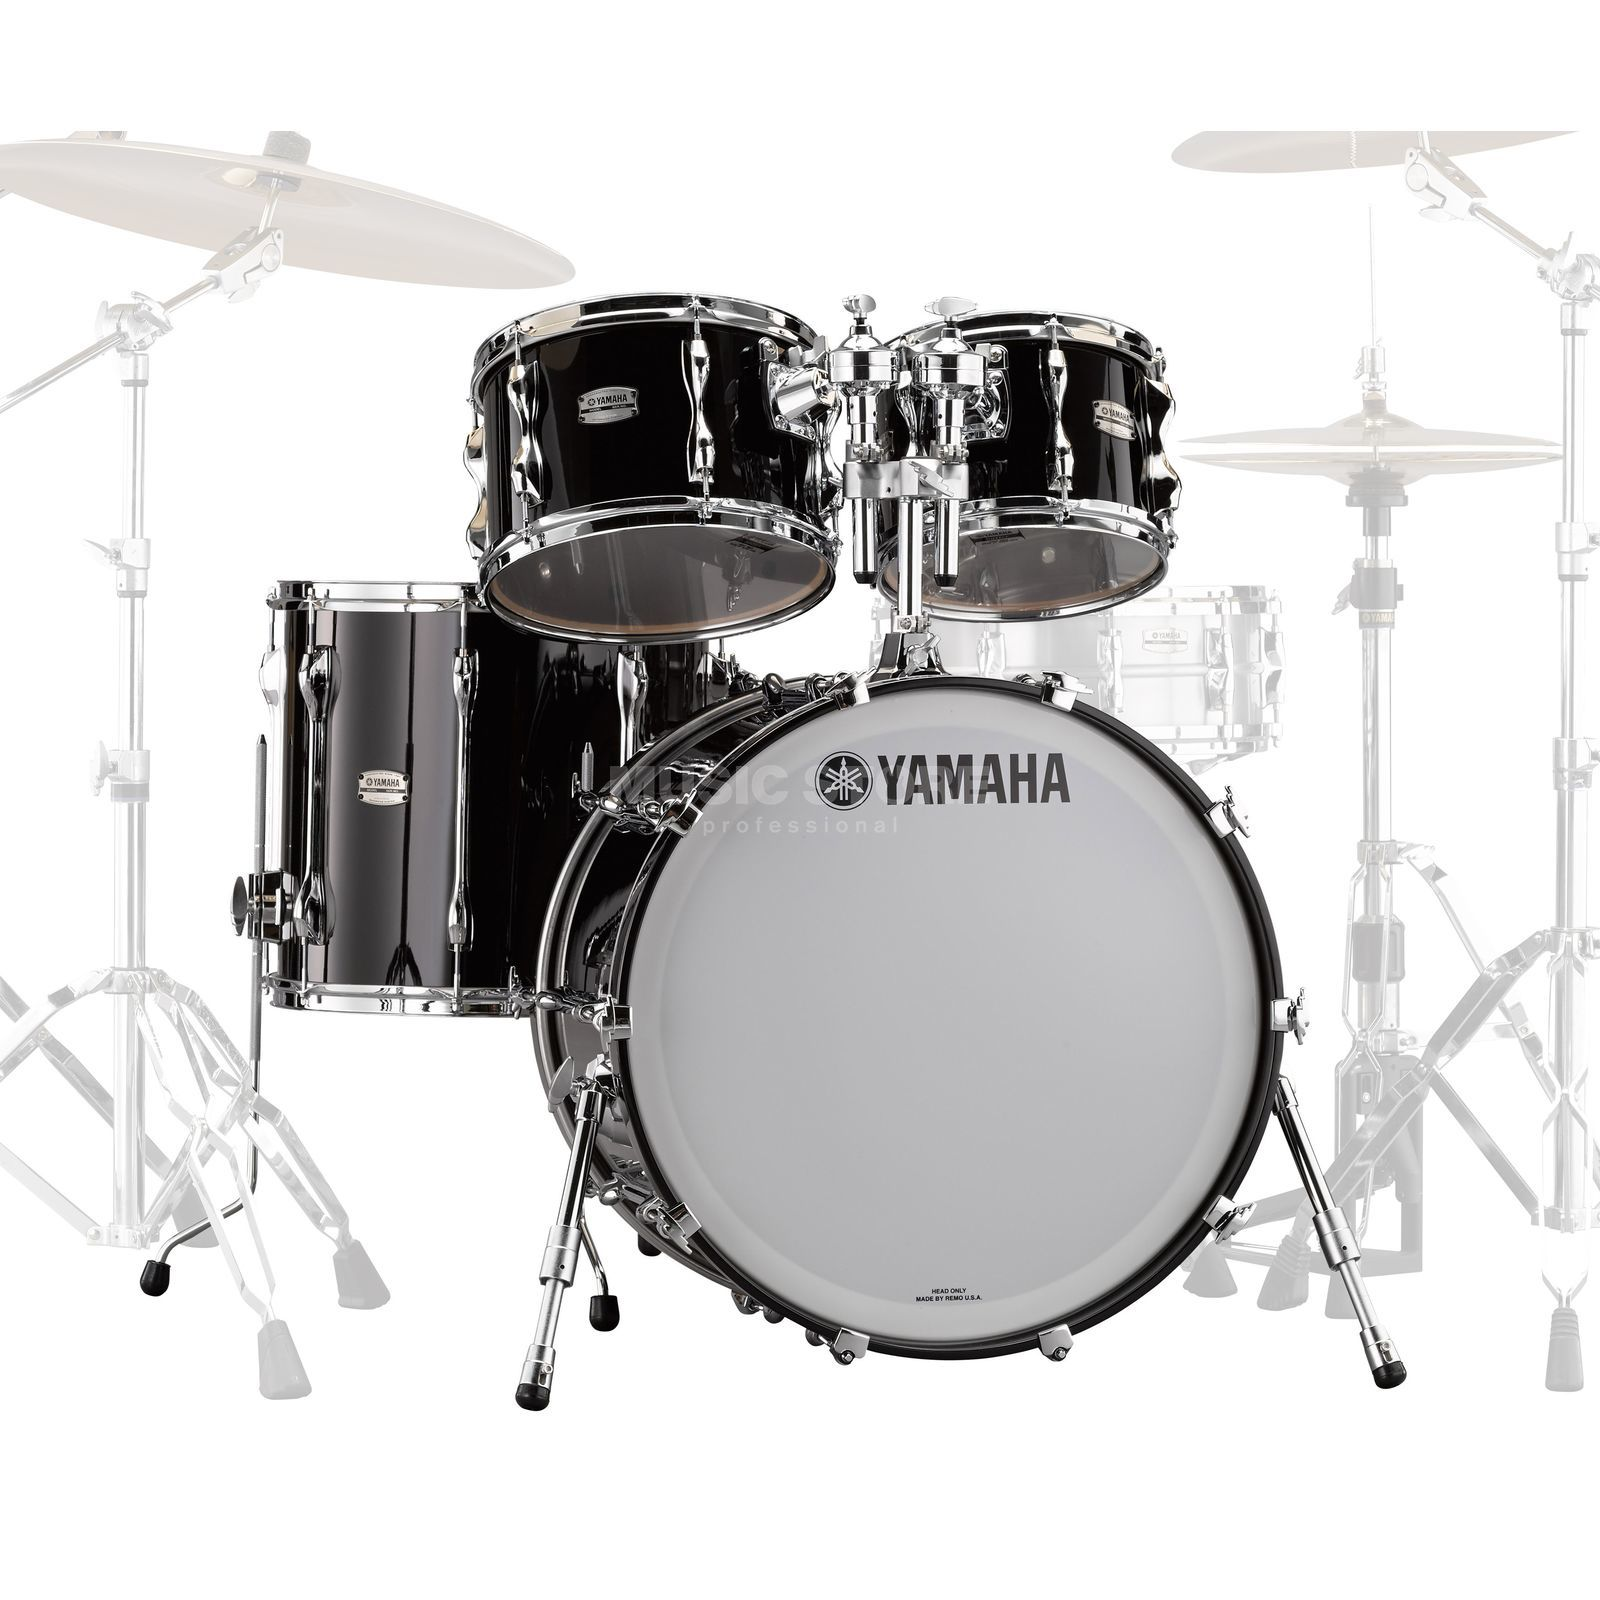 YAMAHA Recording Custom Stage - Set Product Image